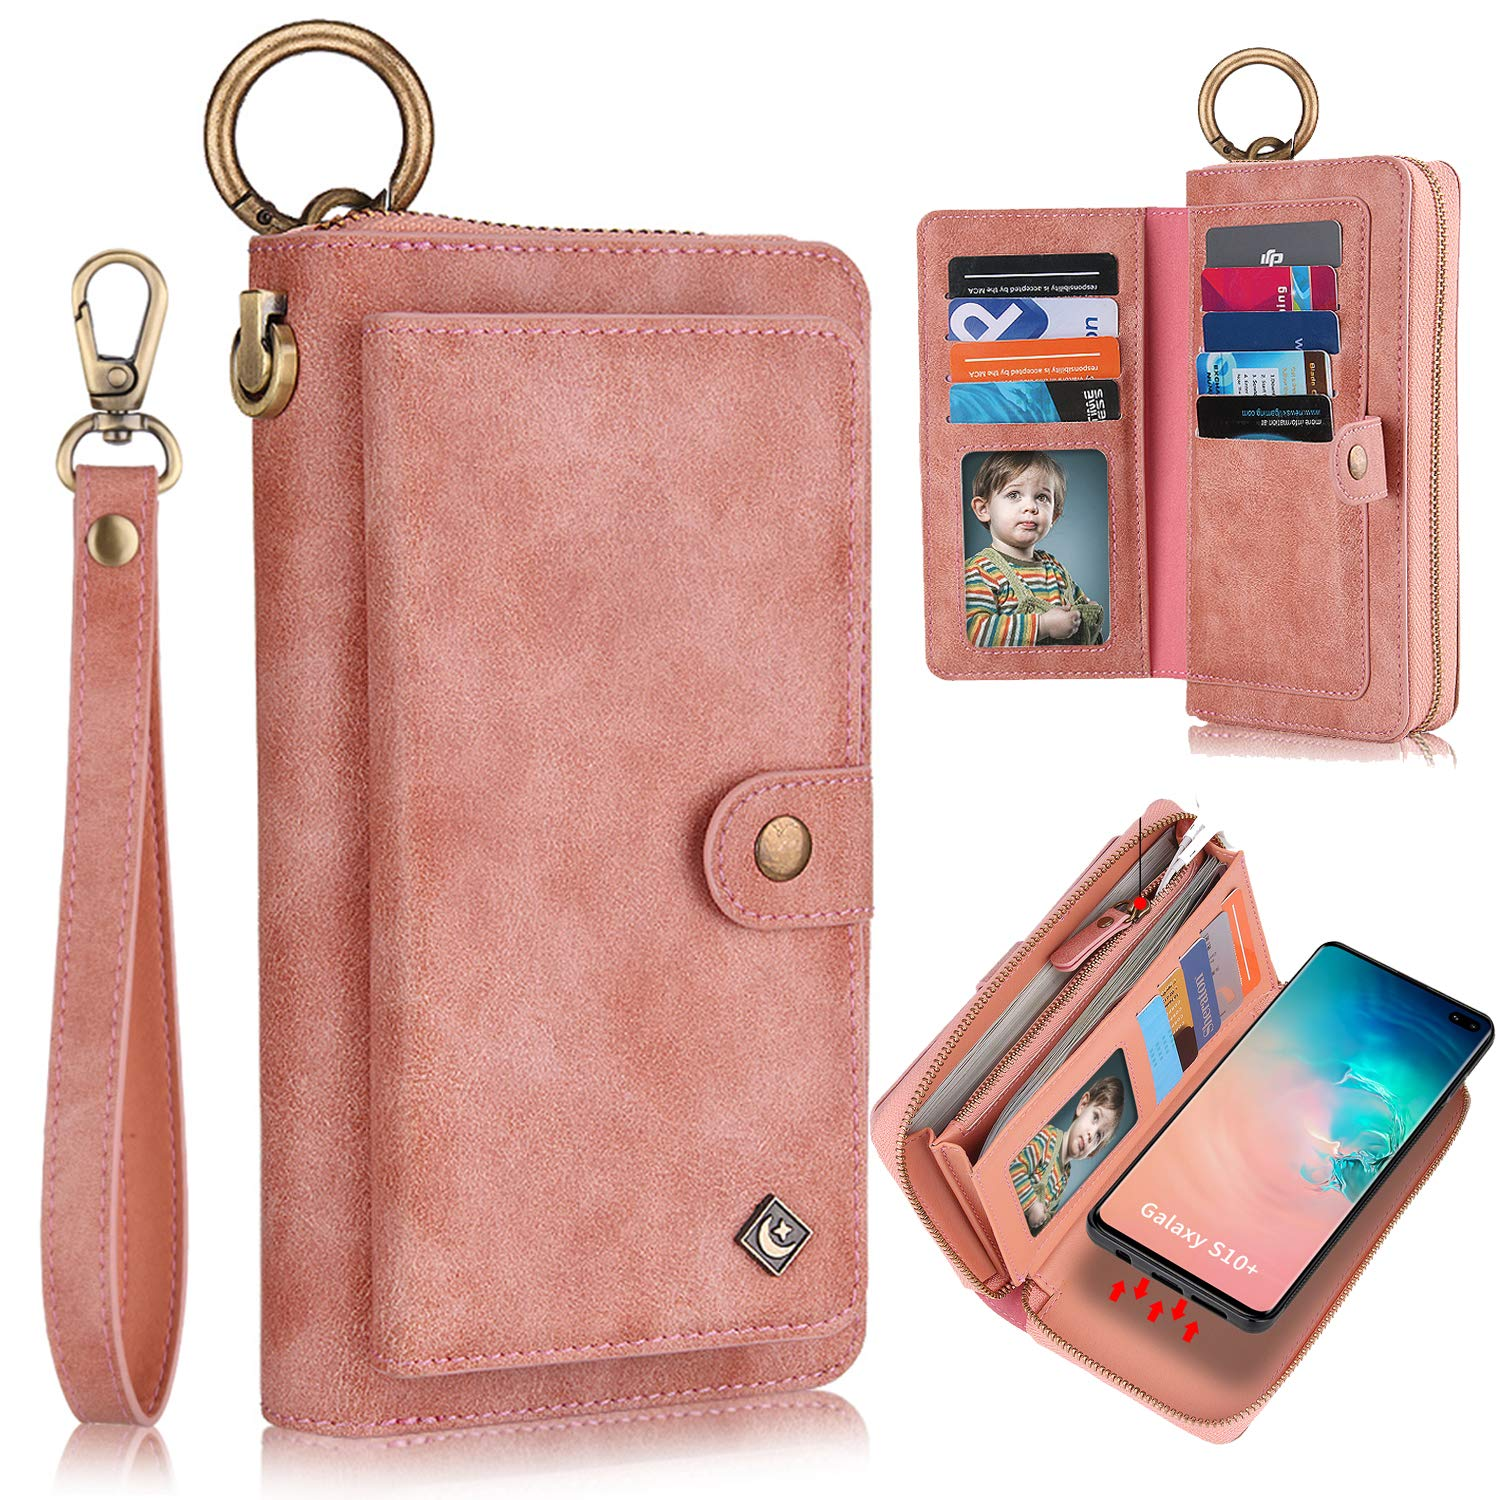 Galaxy S10 Case, XRPow [2 in 1] Magnetic Detachable S10 Wallet Case [Vegan Leather] Zipper Wallet Folio Flip Card Solt [Wrist Strap] Purse Protection Back Cover for Samsung Galaxy S10 - Rose Gold by XRPow